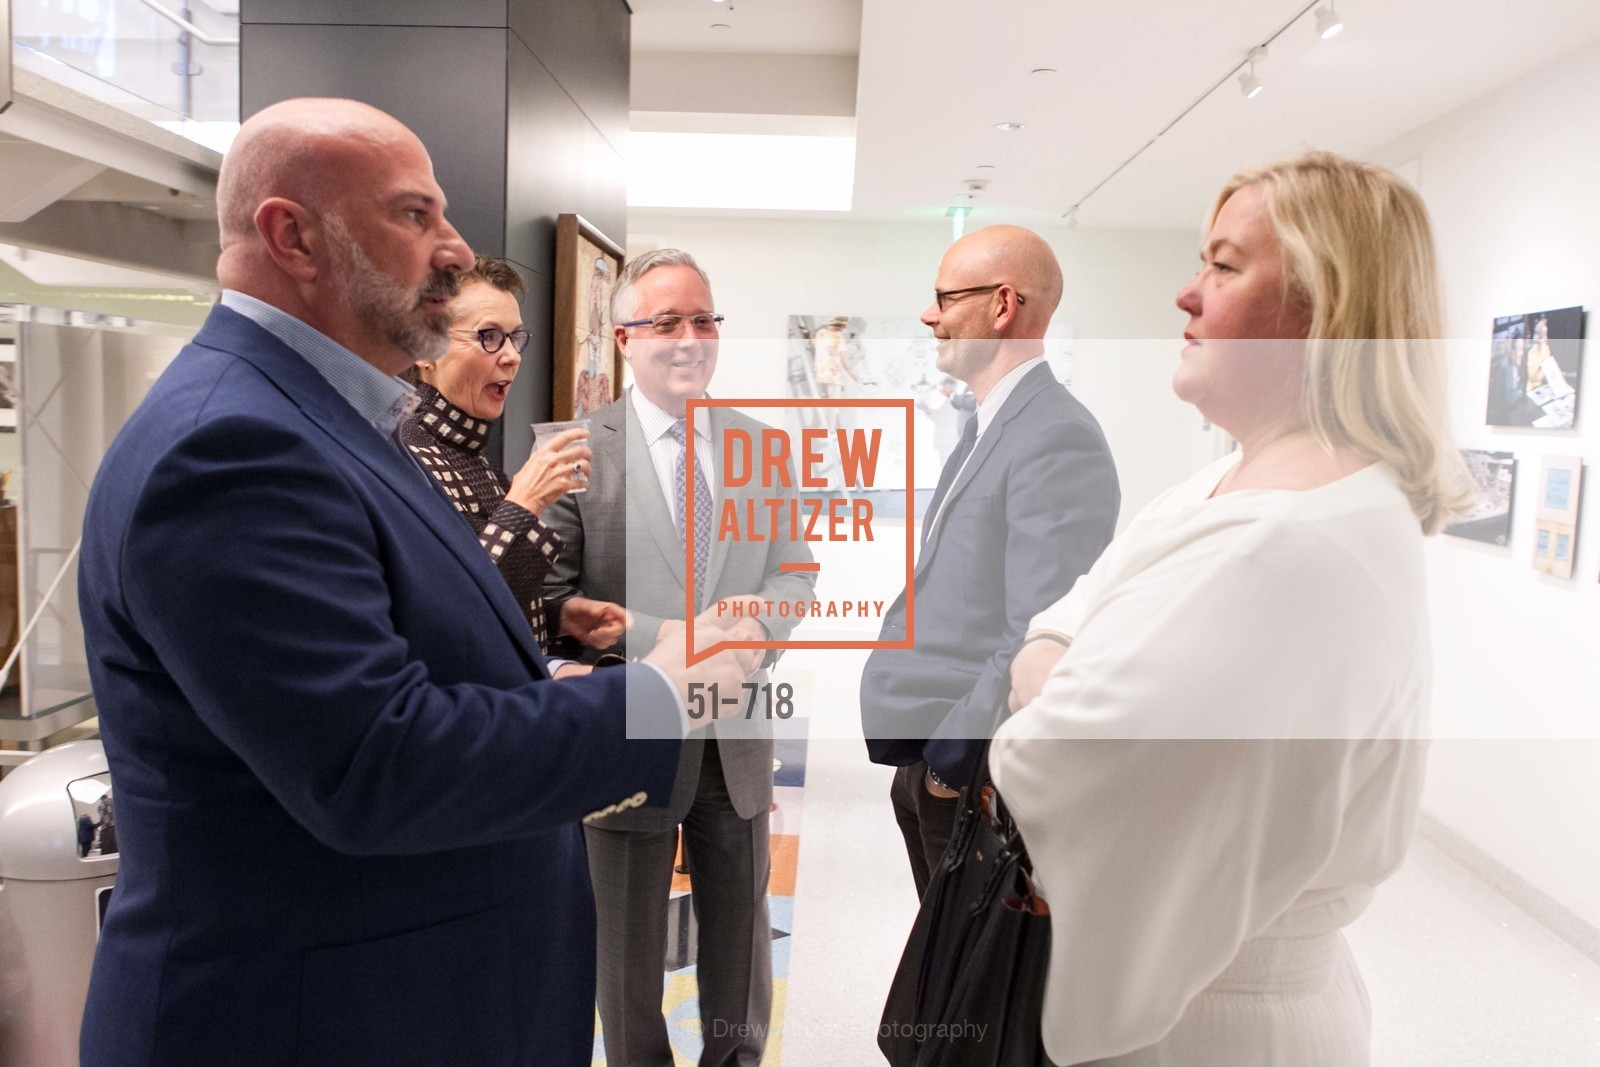 Geoffrey DeSousa, Heidi Gerpheide, ICAA Hosts NICKY HASLAM'S Lecture and Book Signing, US, May 12th, 2015,Drew Altizer, Drew Altizer Photography, full-service agency, private events, San Francisco photographer, photographer california